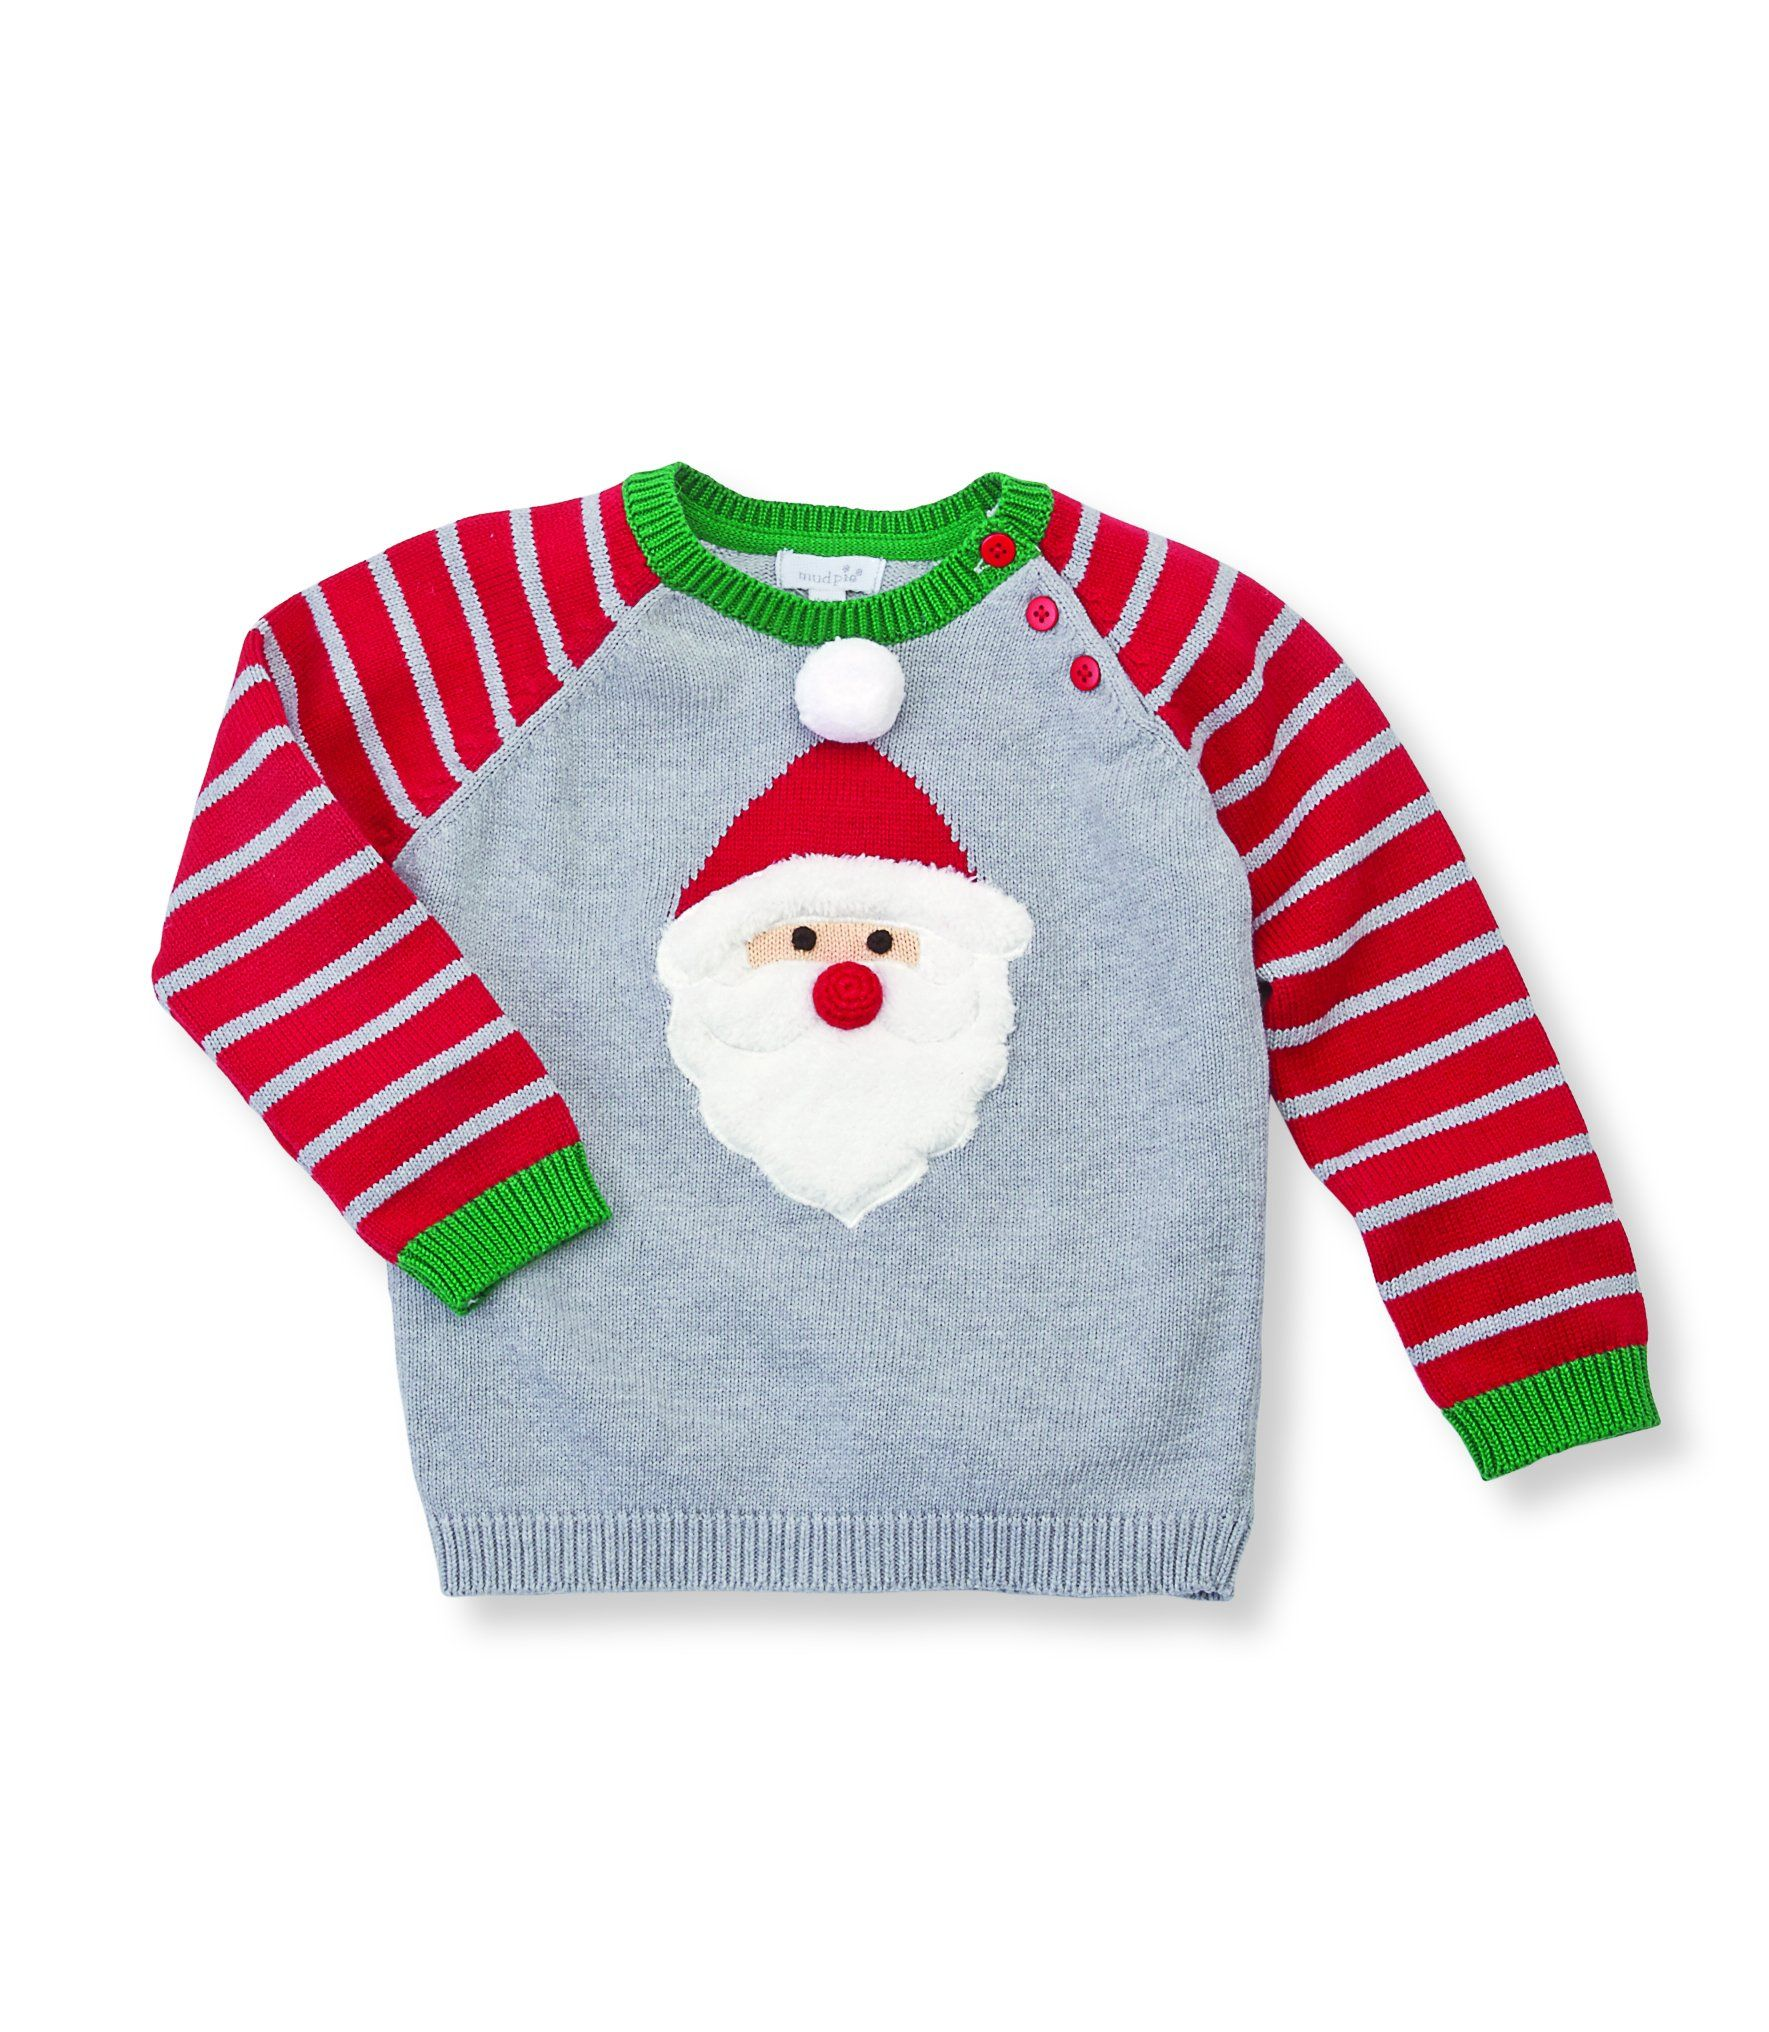 207fa61e1388df Holiday Striped Santa Sweater by Mud Pie * 12-18M | Products ...